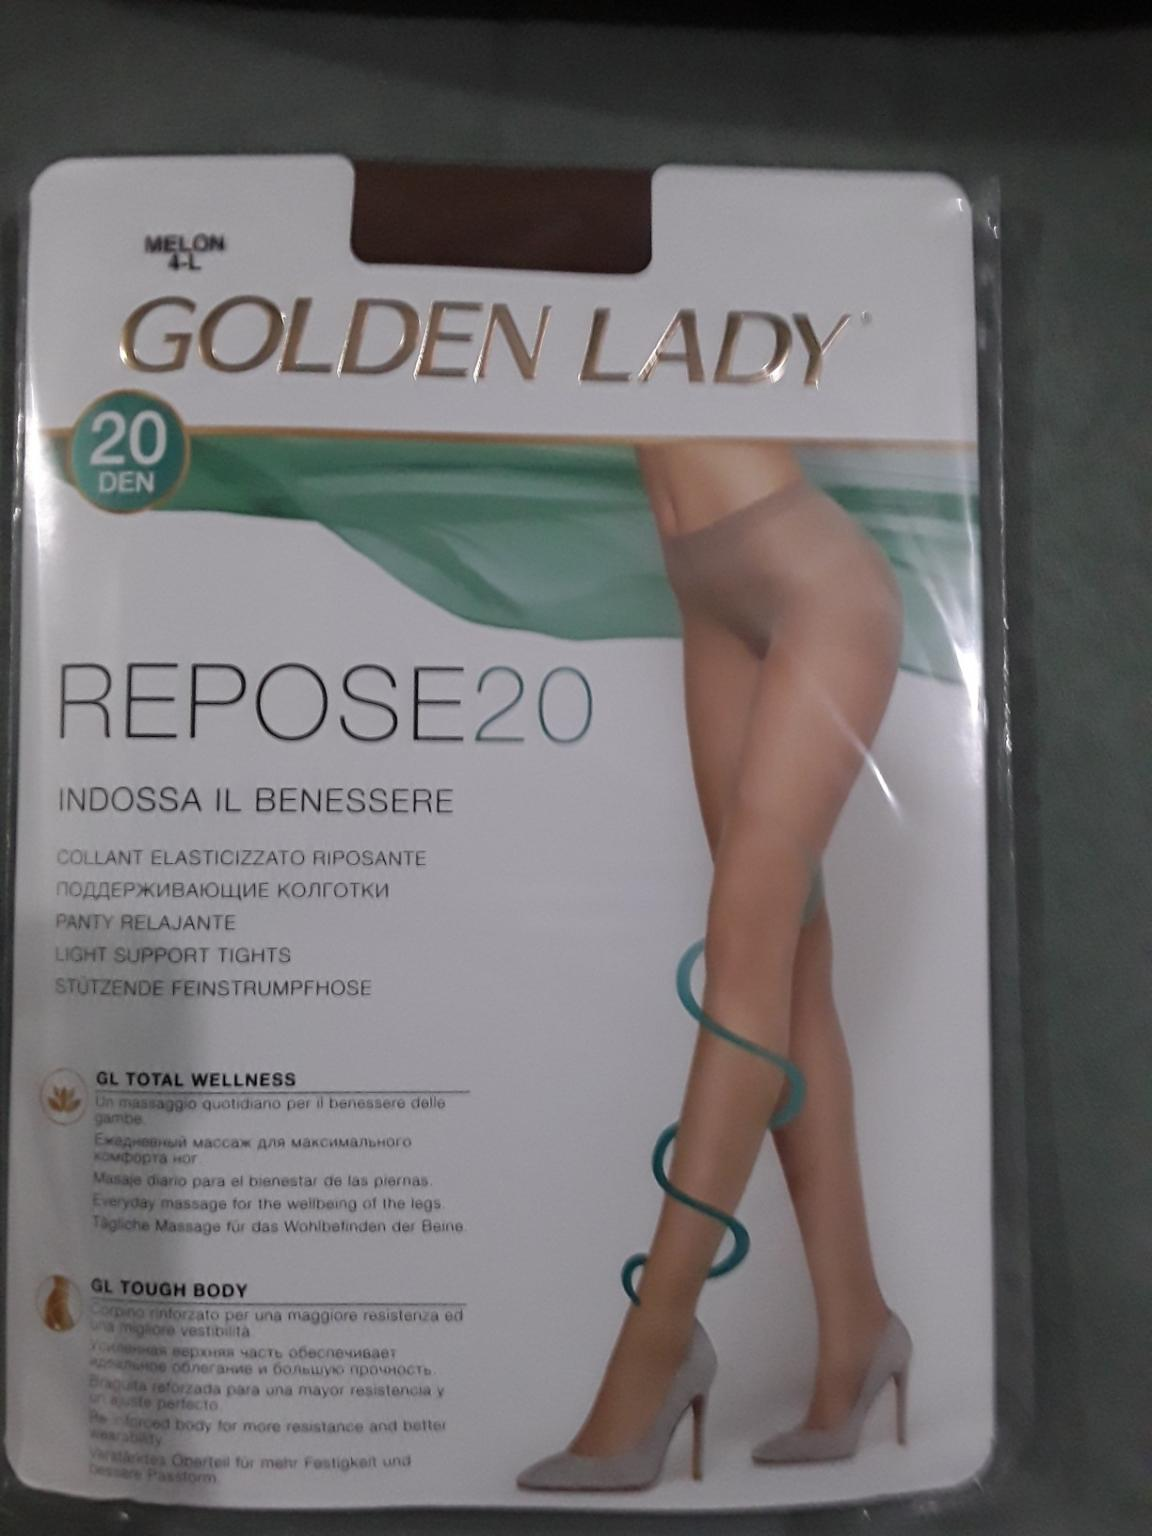 COLLANT DONNA ELASTICIZZATO RIPOSANTE GOLDEN LADY REPOSE 40